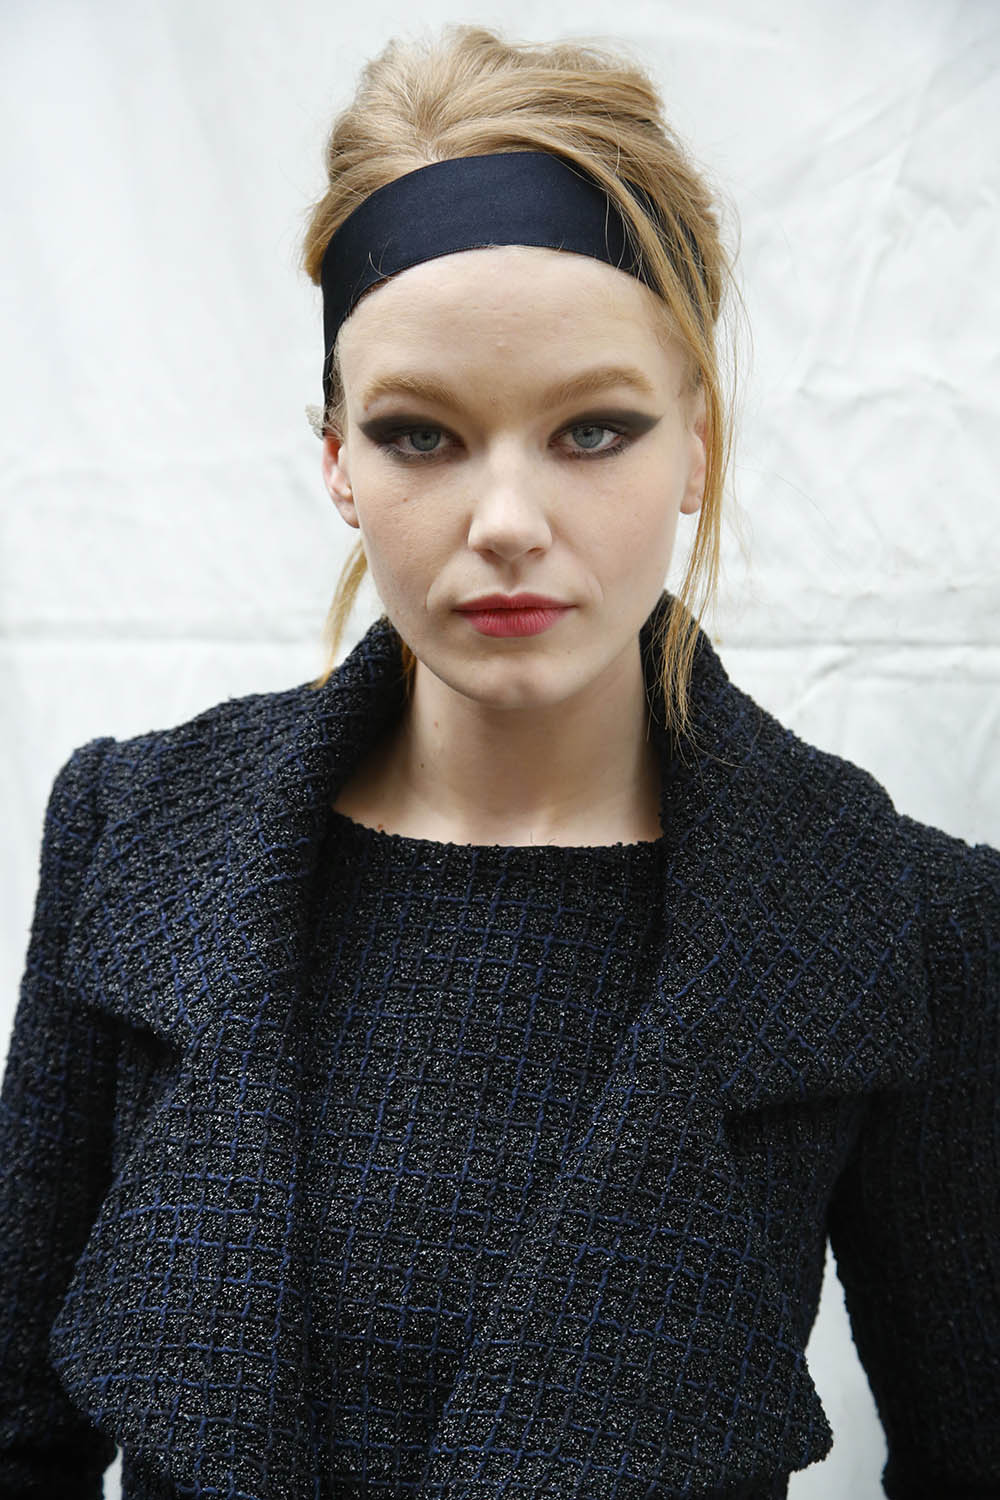 Chanel_Backstage_Ready_to_Wear_Fall_Winter_2015_16_Paris_March2015 PHOTO: EAST NEWS / ZEPPELIN